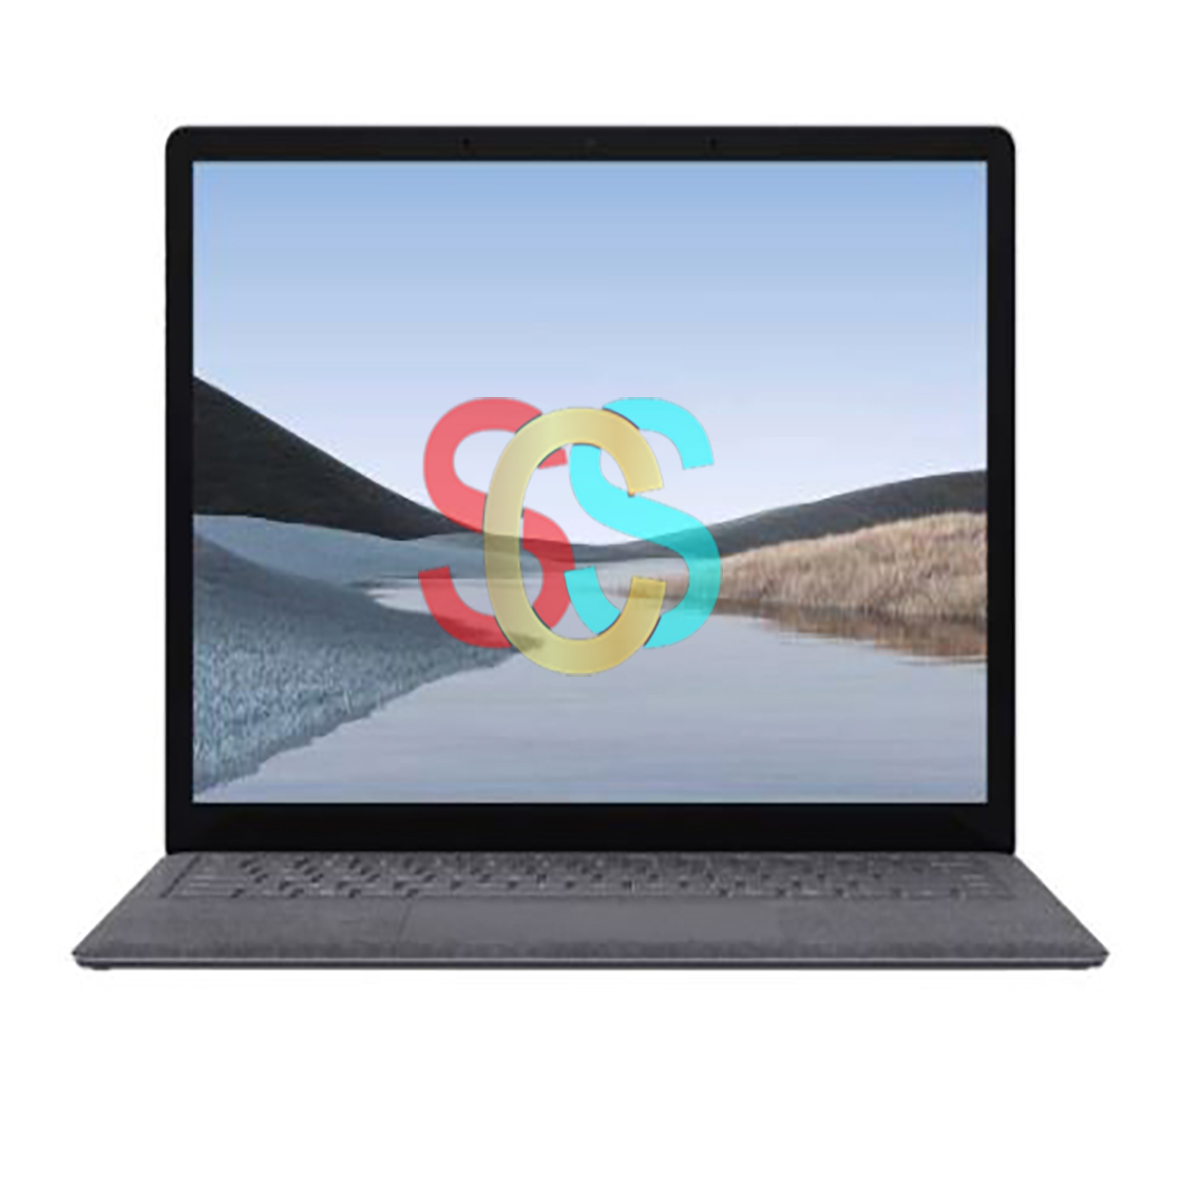 Notebook Series - Surface Laptop Processor Brand - Intel Processor Generation - 10th Gen Processor Model - Core i5 1035G7 Processor Base Frequency - 1.20GHz Processor Max Turbo Frequency - 3.70GHz